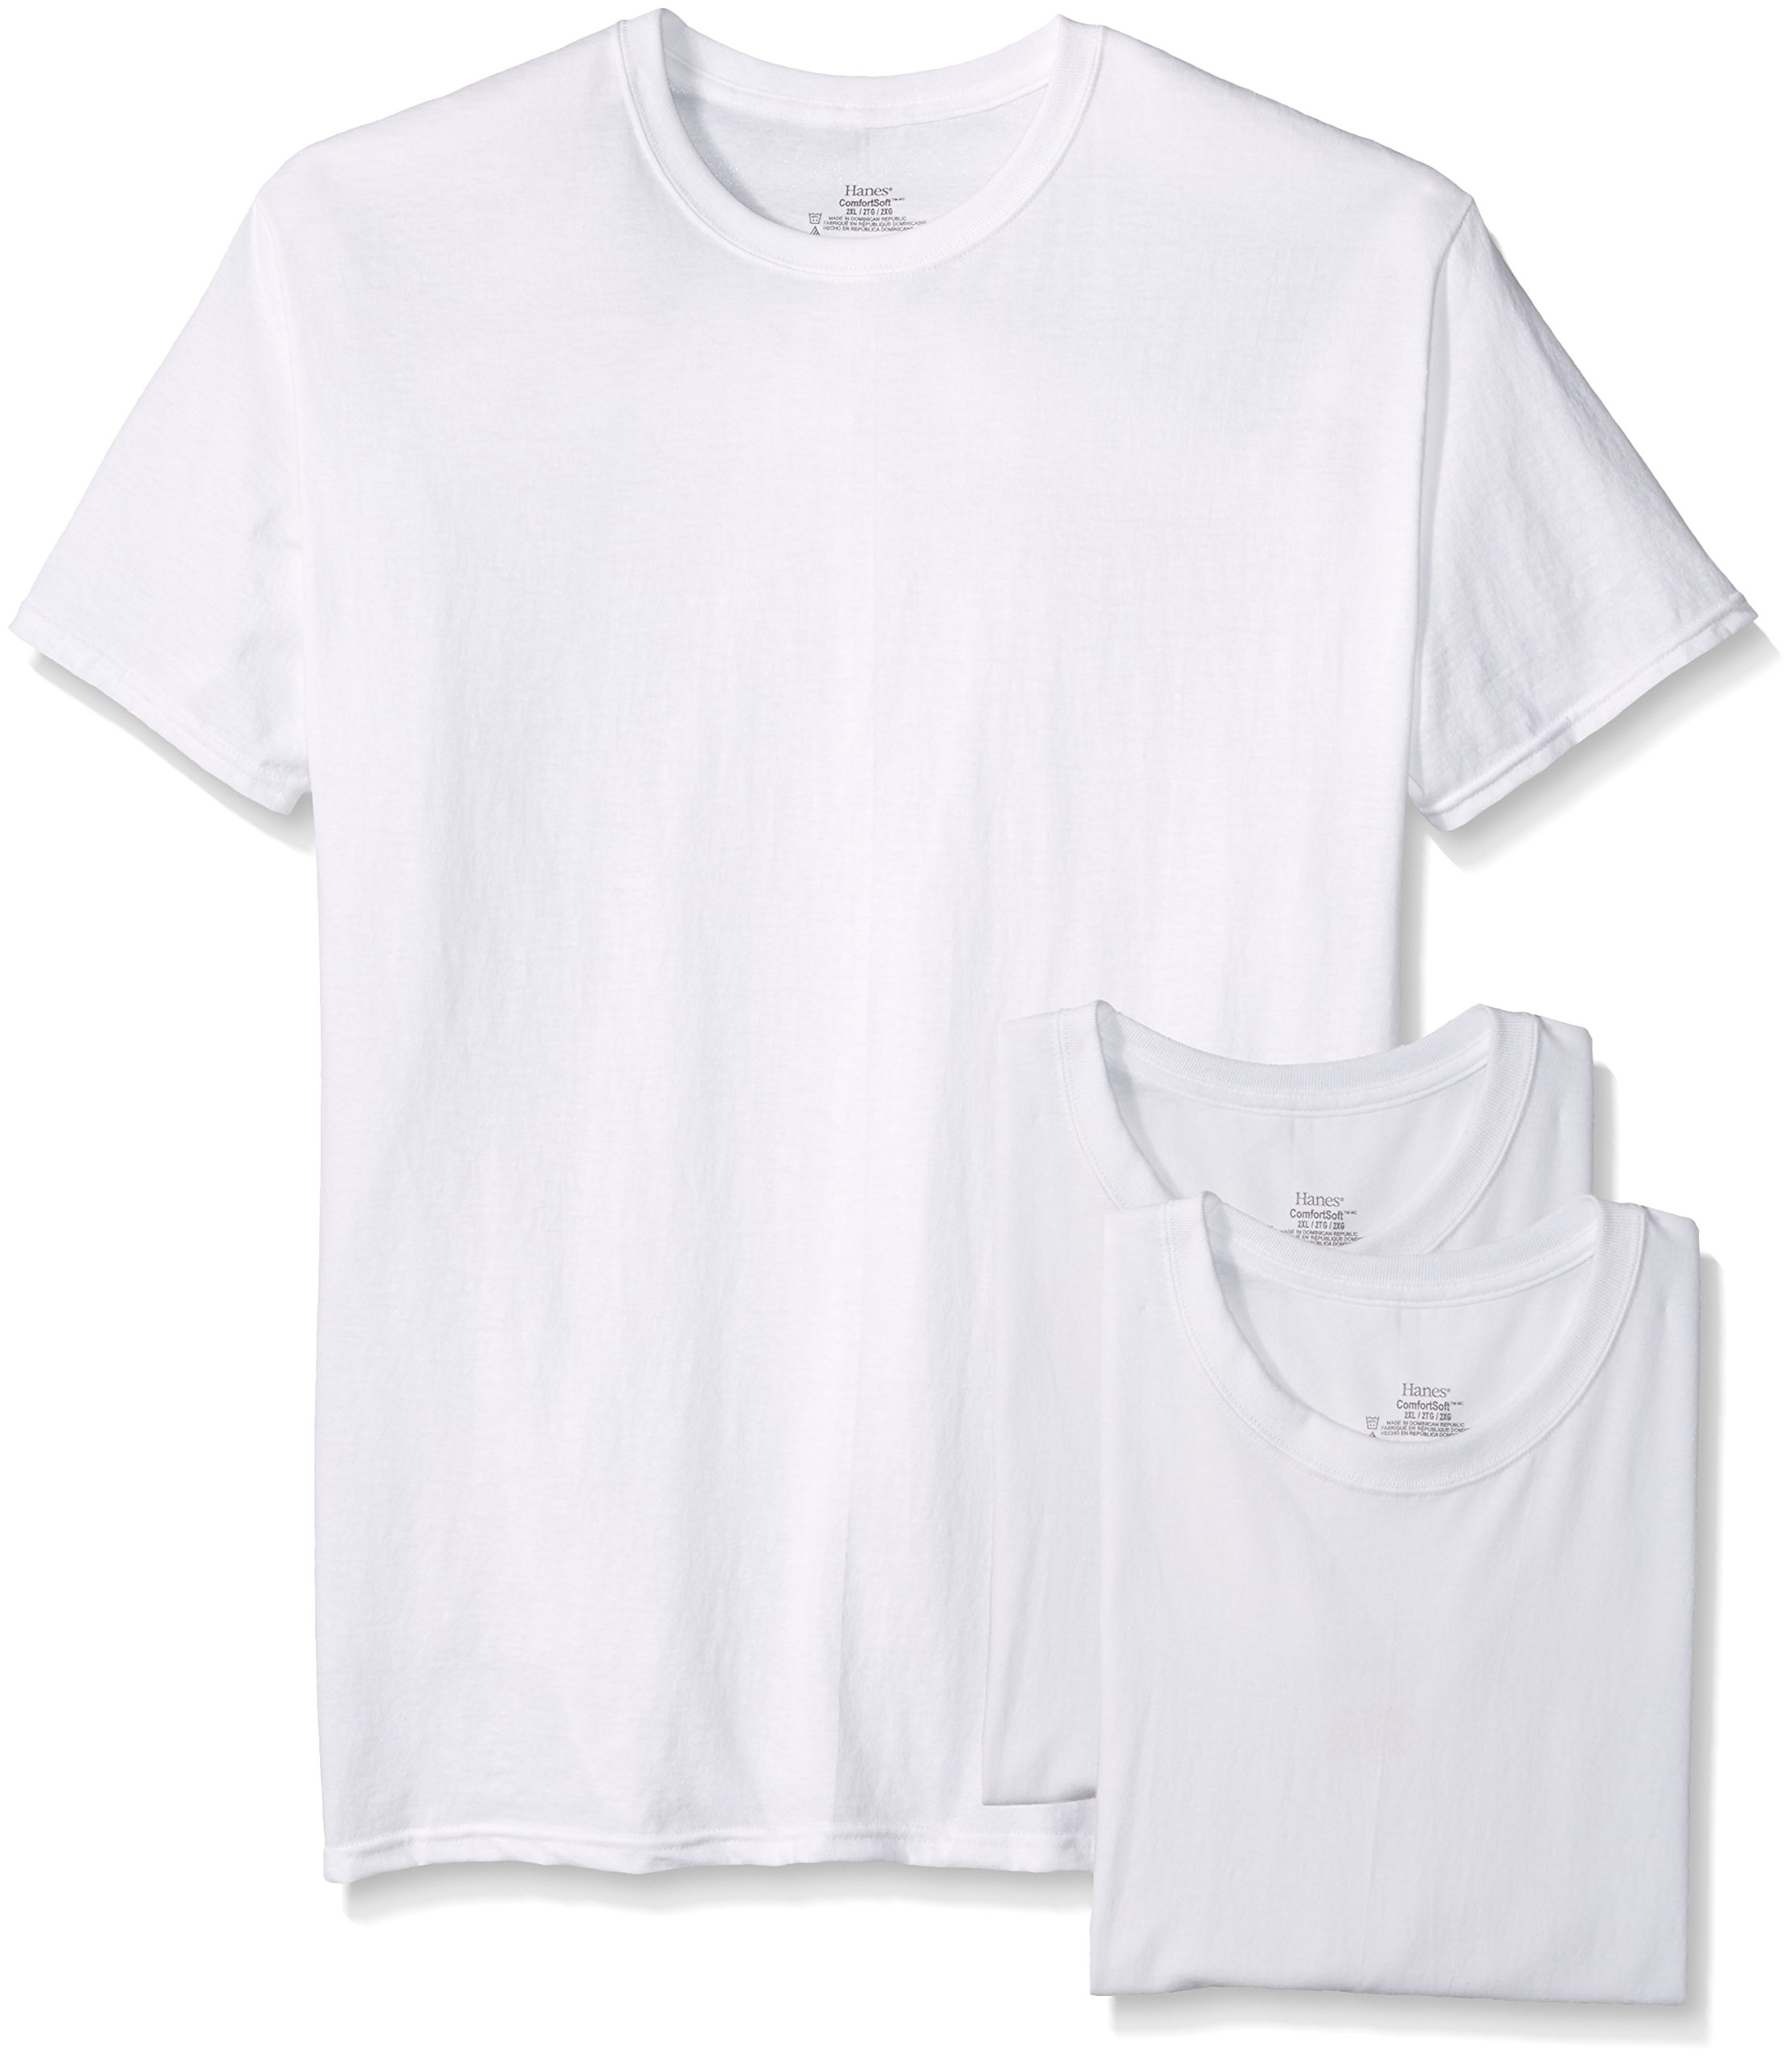 Hanes Men's 3-Pack Crew Neck T-Shirt